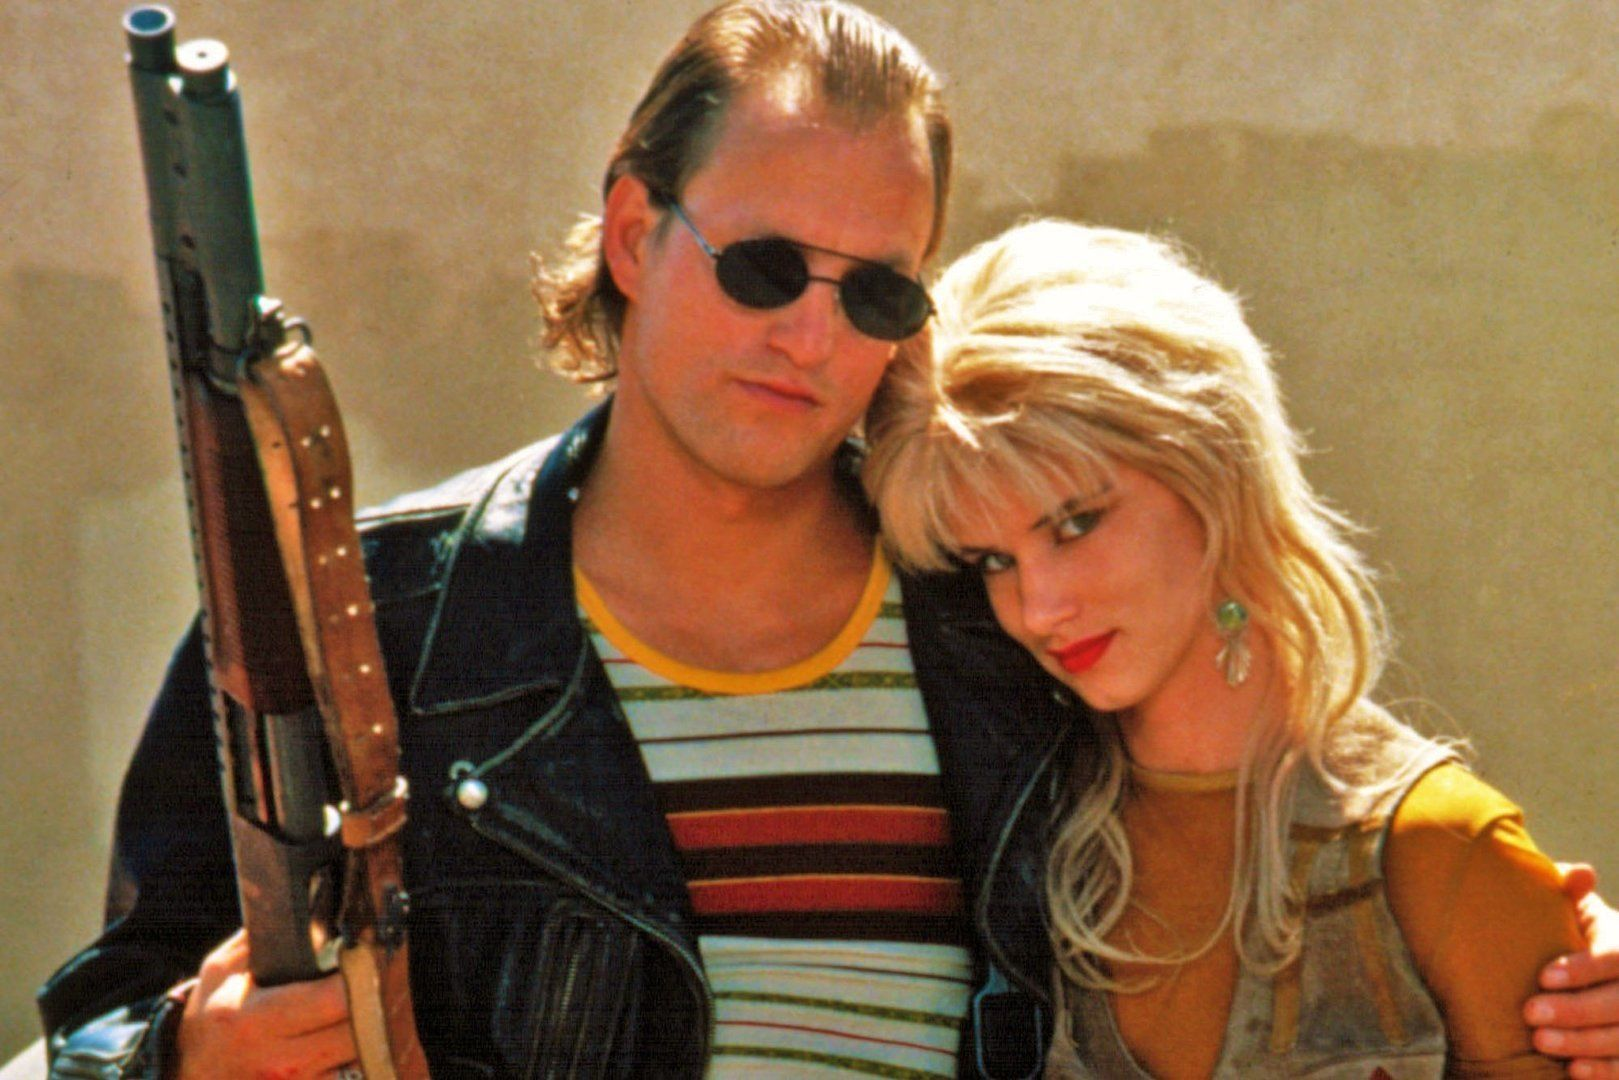 NATURAL BORN KILLERS, from left: Juliette Lewis, Woody Harrelson, 1994. ©Warner Bros./Courtesy Everett Collection